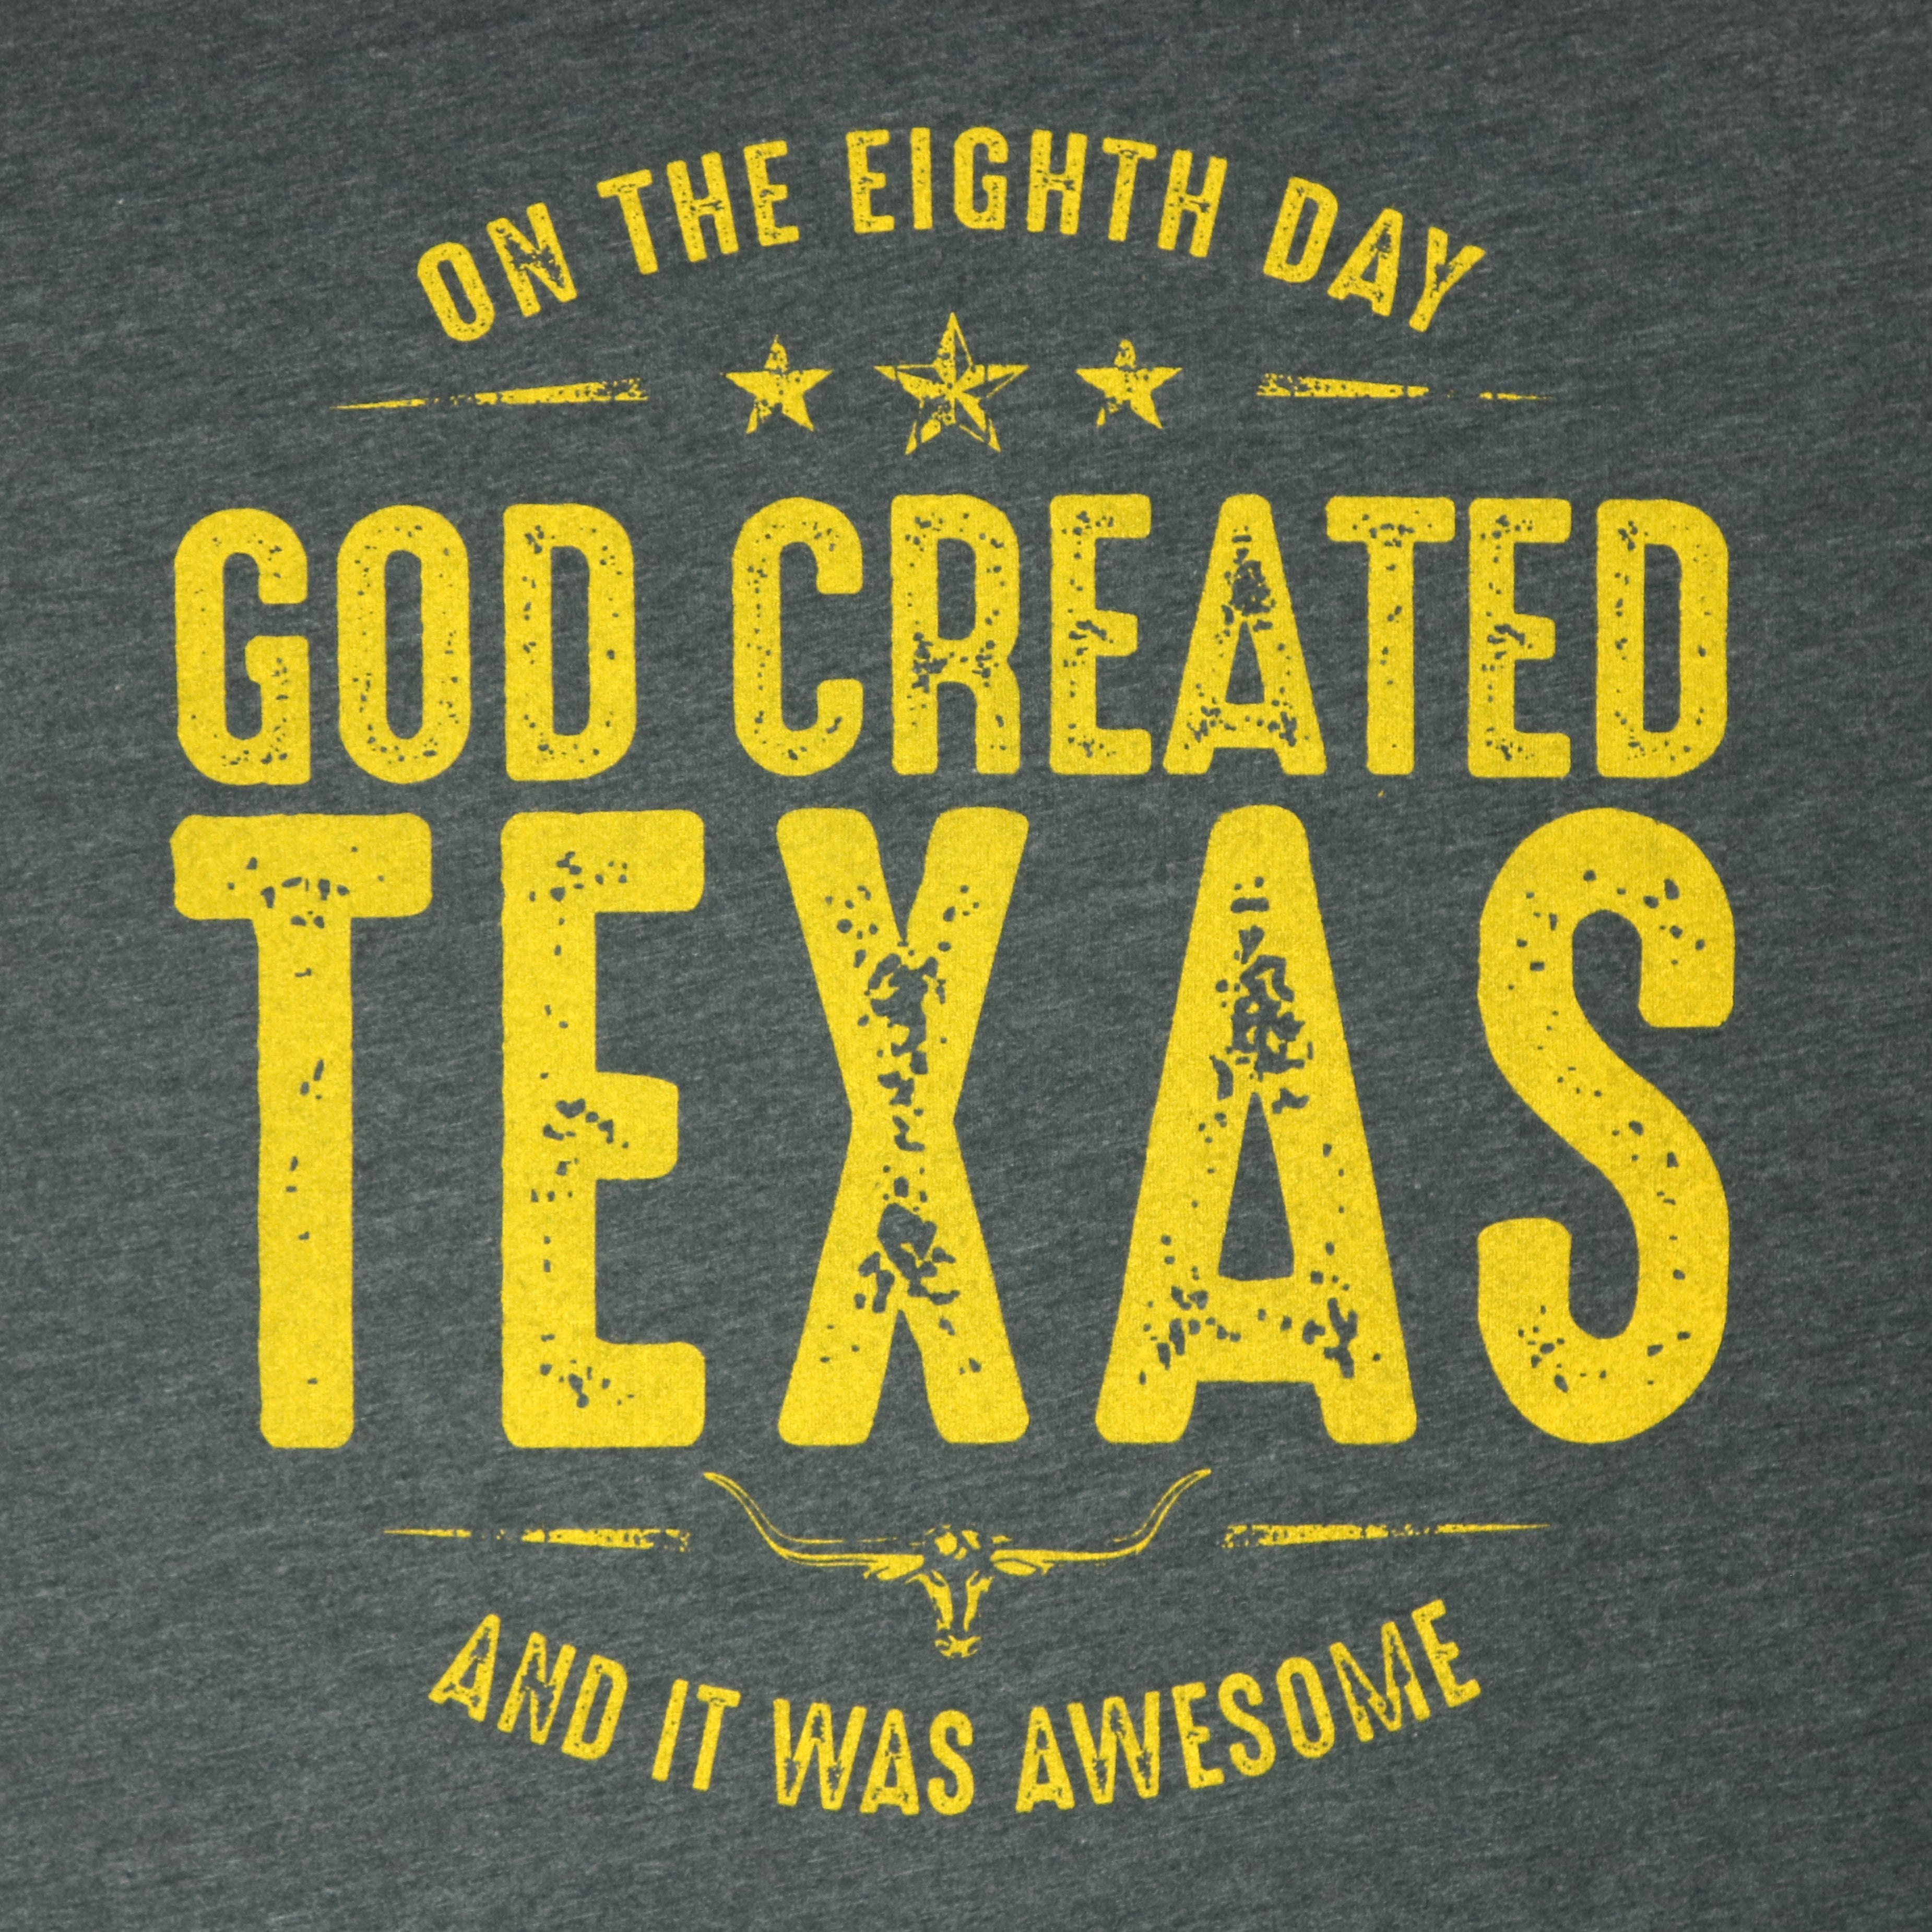 On The Eighth Day God Created an Awesome Texas T-Shirt